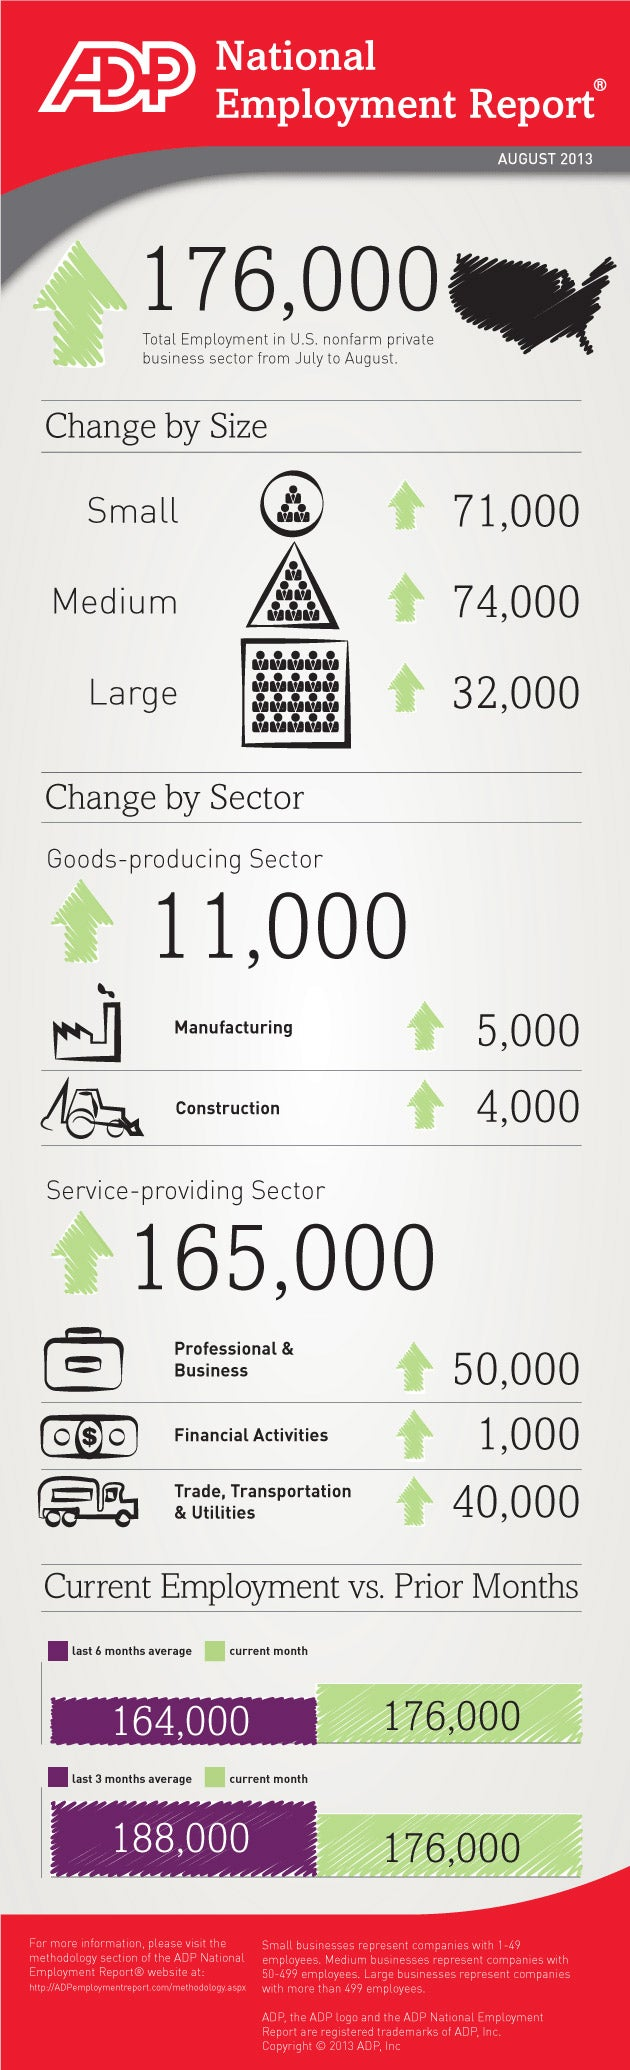 Where Job Growth Is Strongest (Infographic)